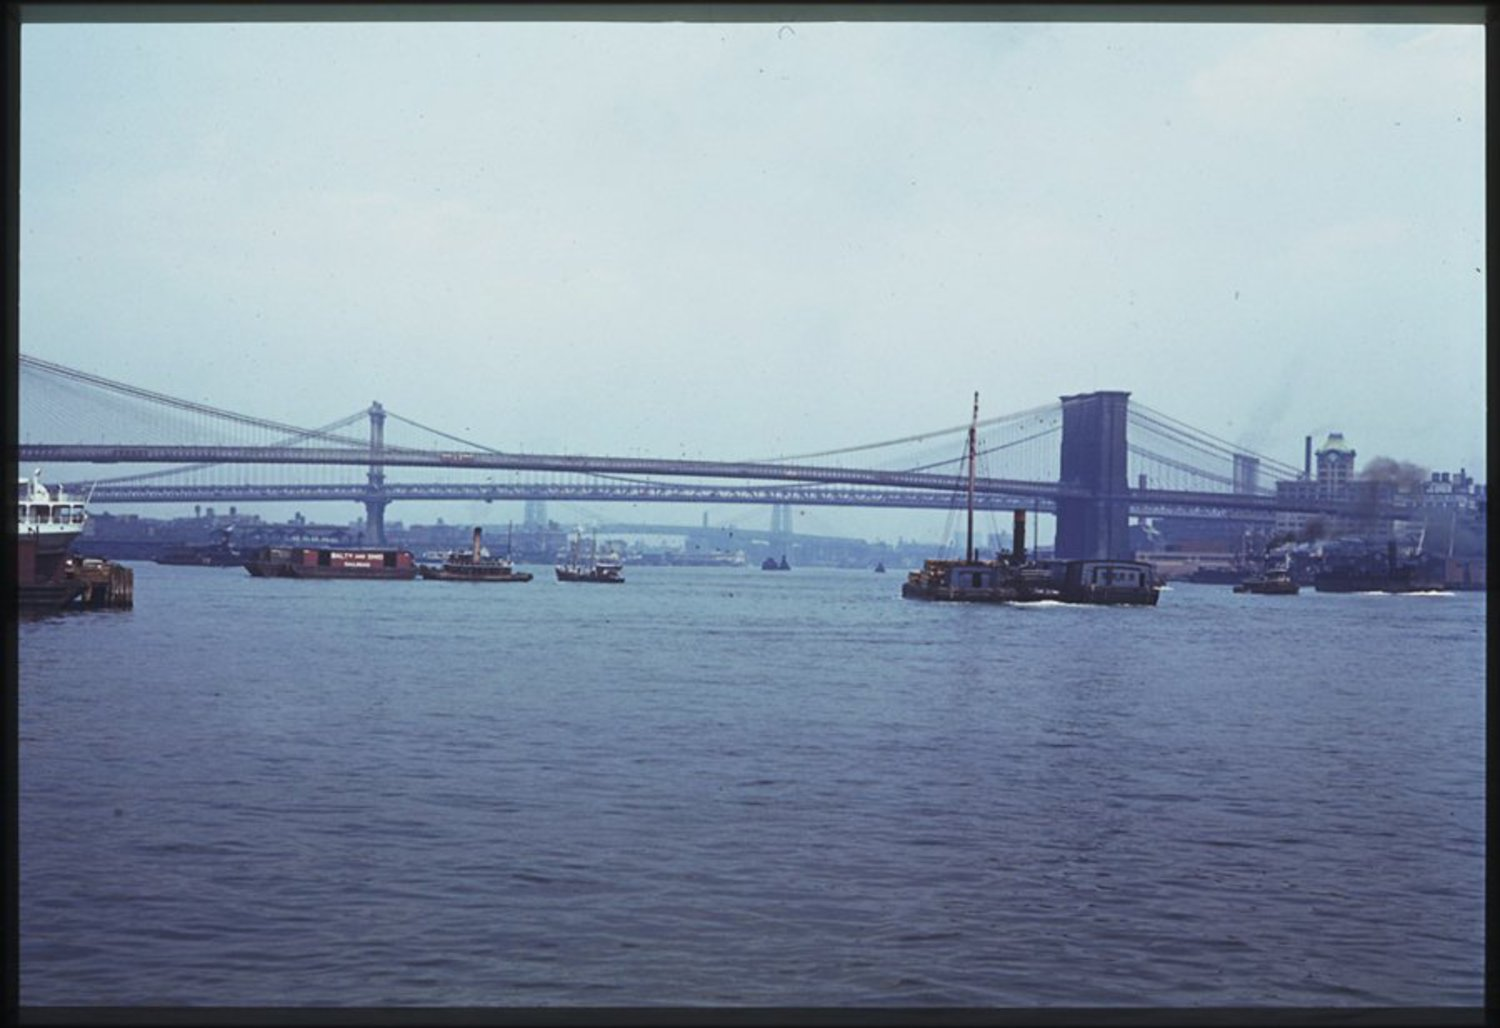 Here, a view of the East River and the majestic Brooklyn Bridge.